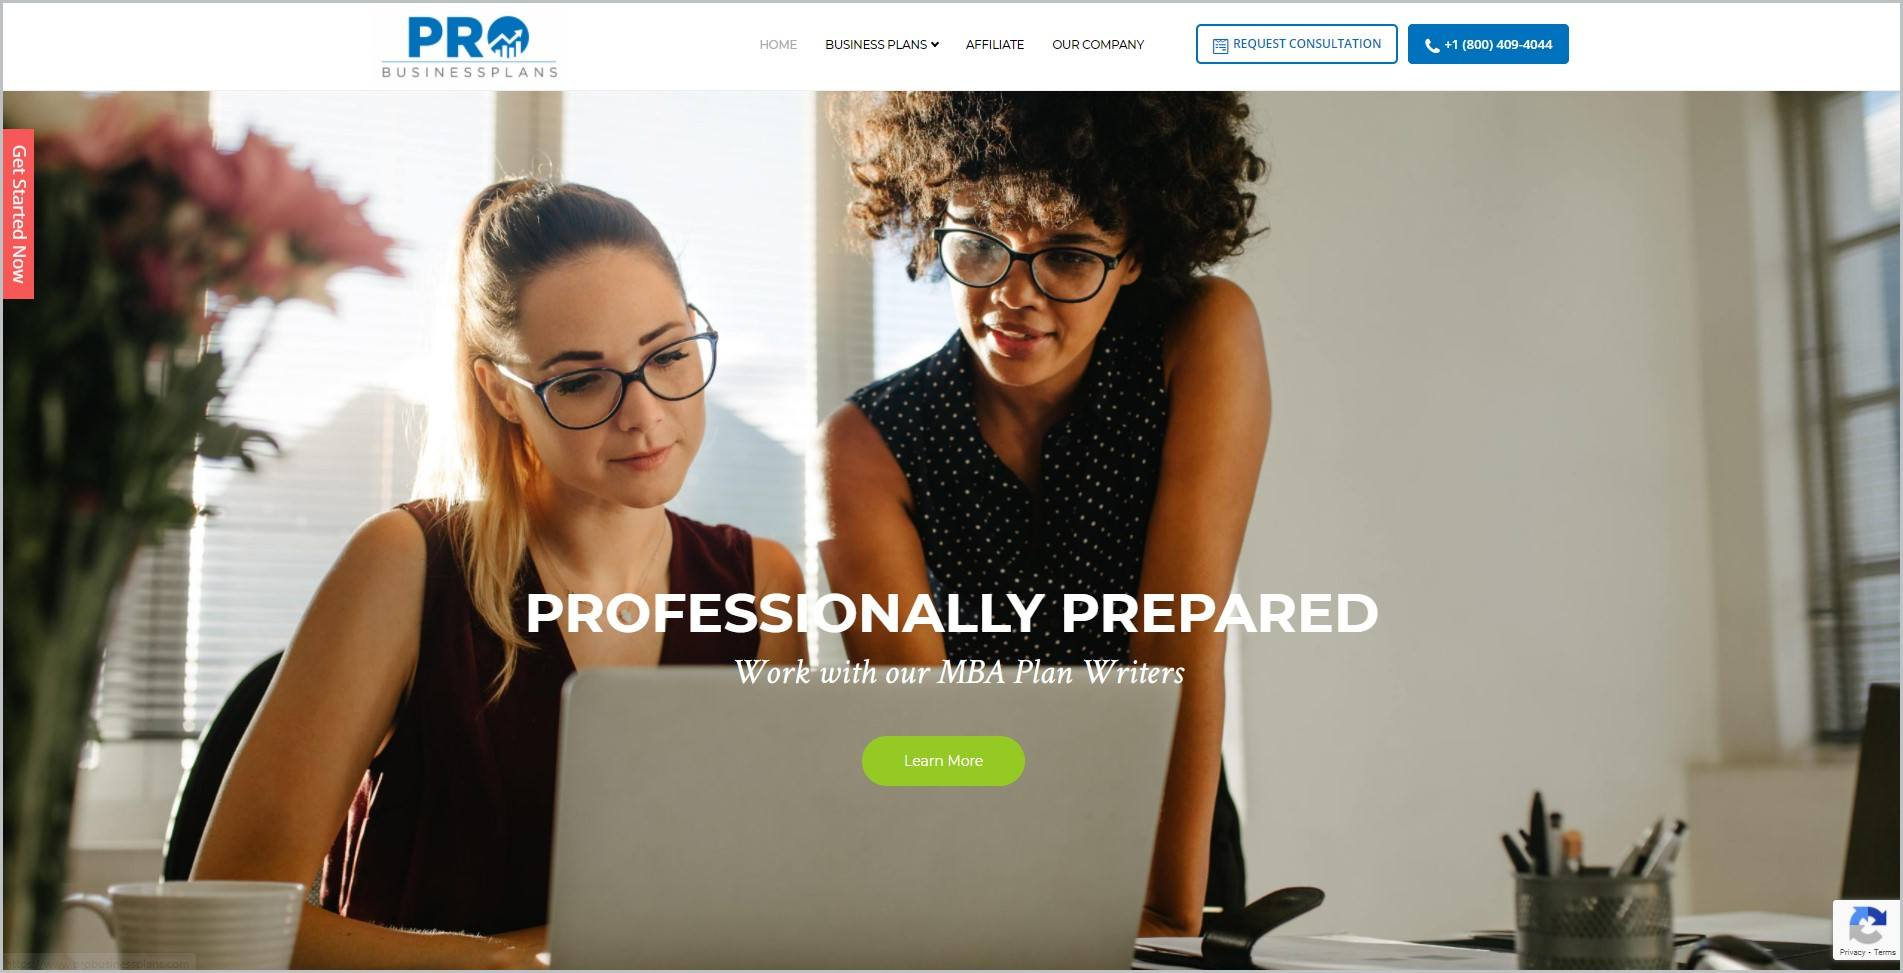 screenshot of Pro Business Plan homepage, with white header with the website's name and main navigation menu, it features an image of two women in an office set up in front of a laptop